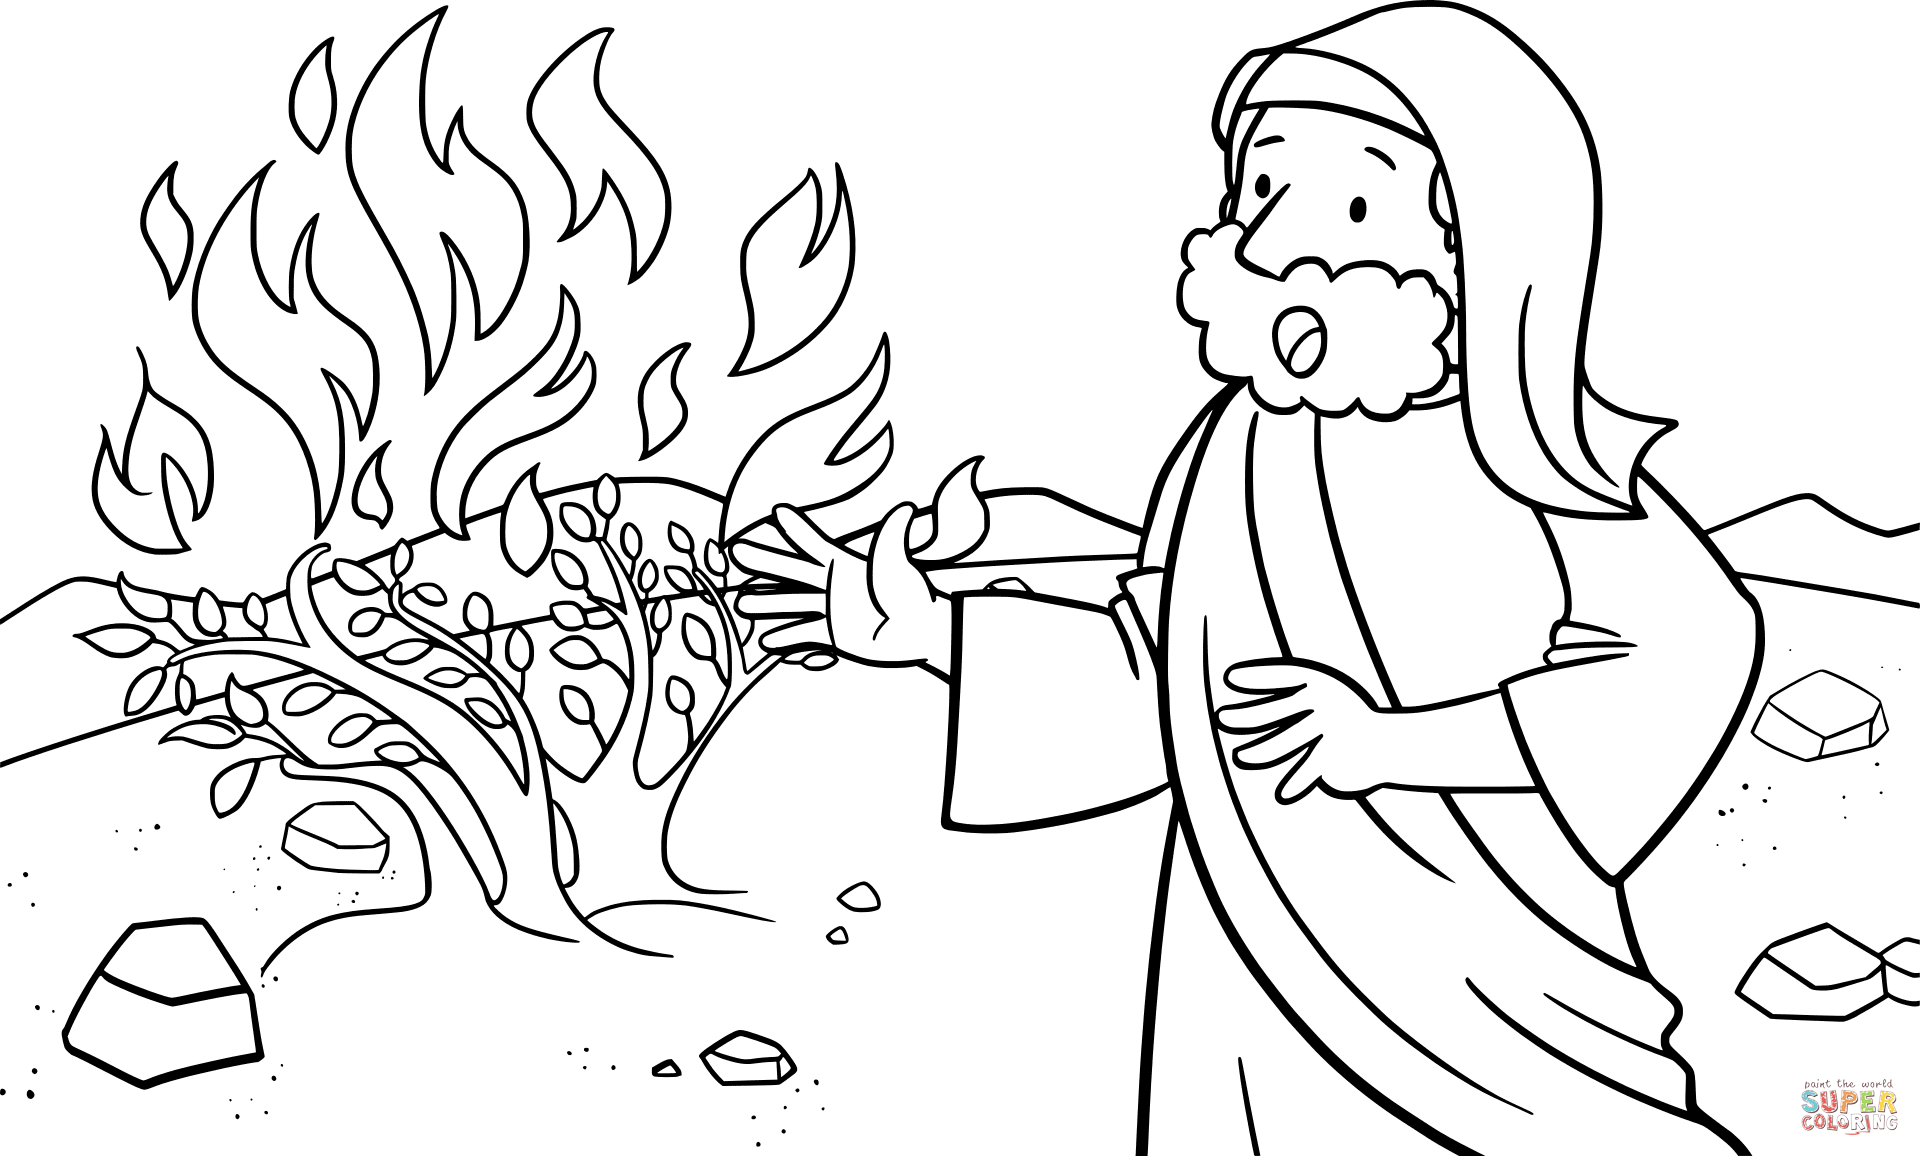 Moses Talking To God On The Mount Horeb Coloring Page From Moses Category Select From